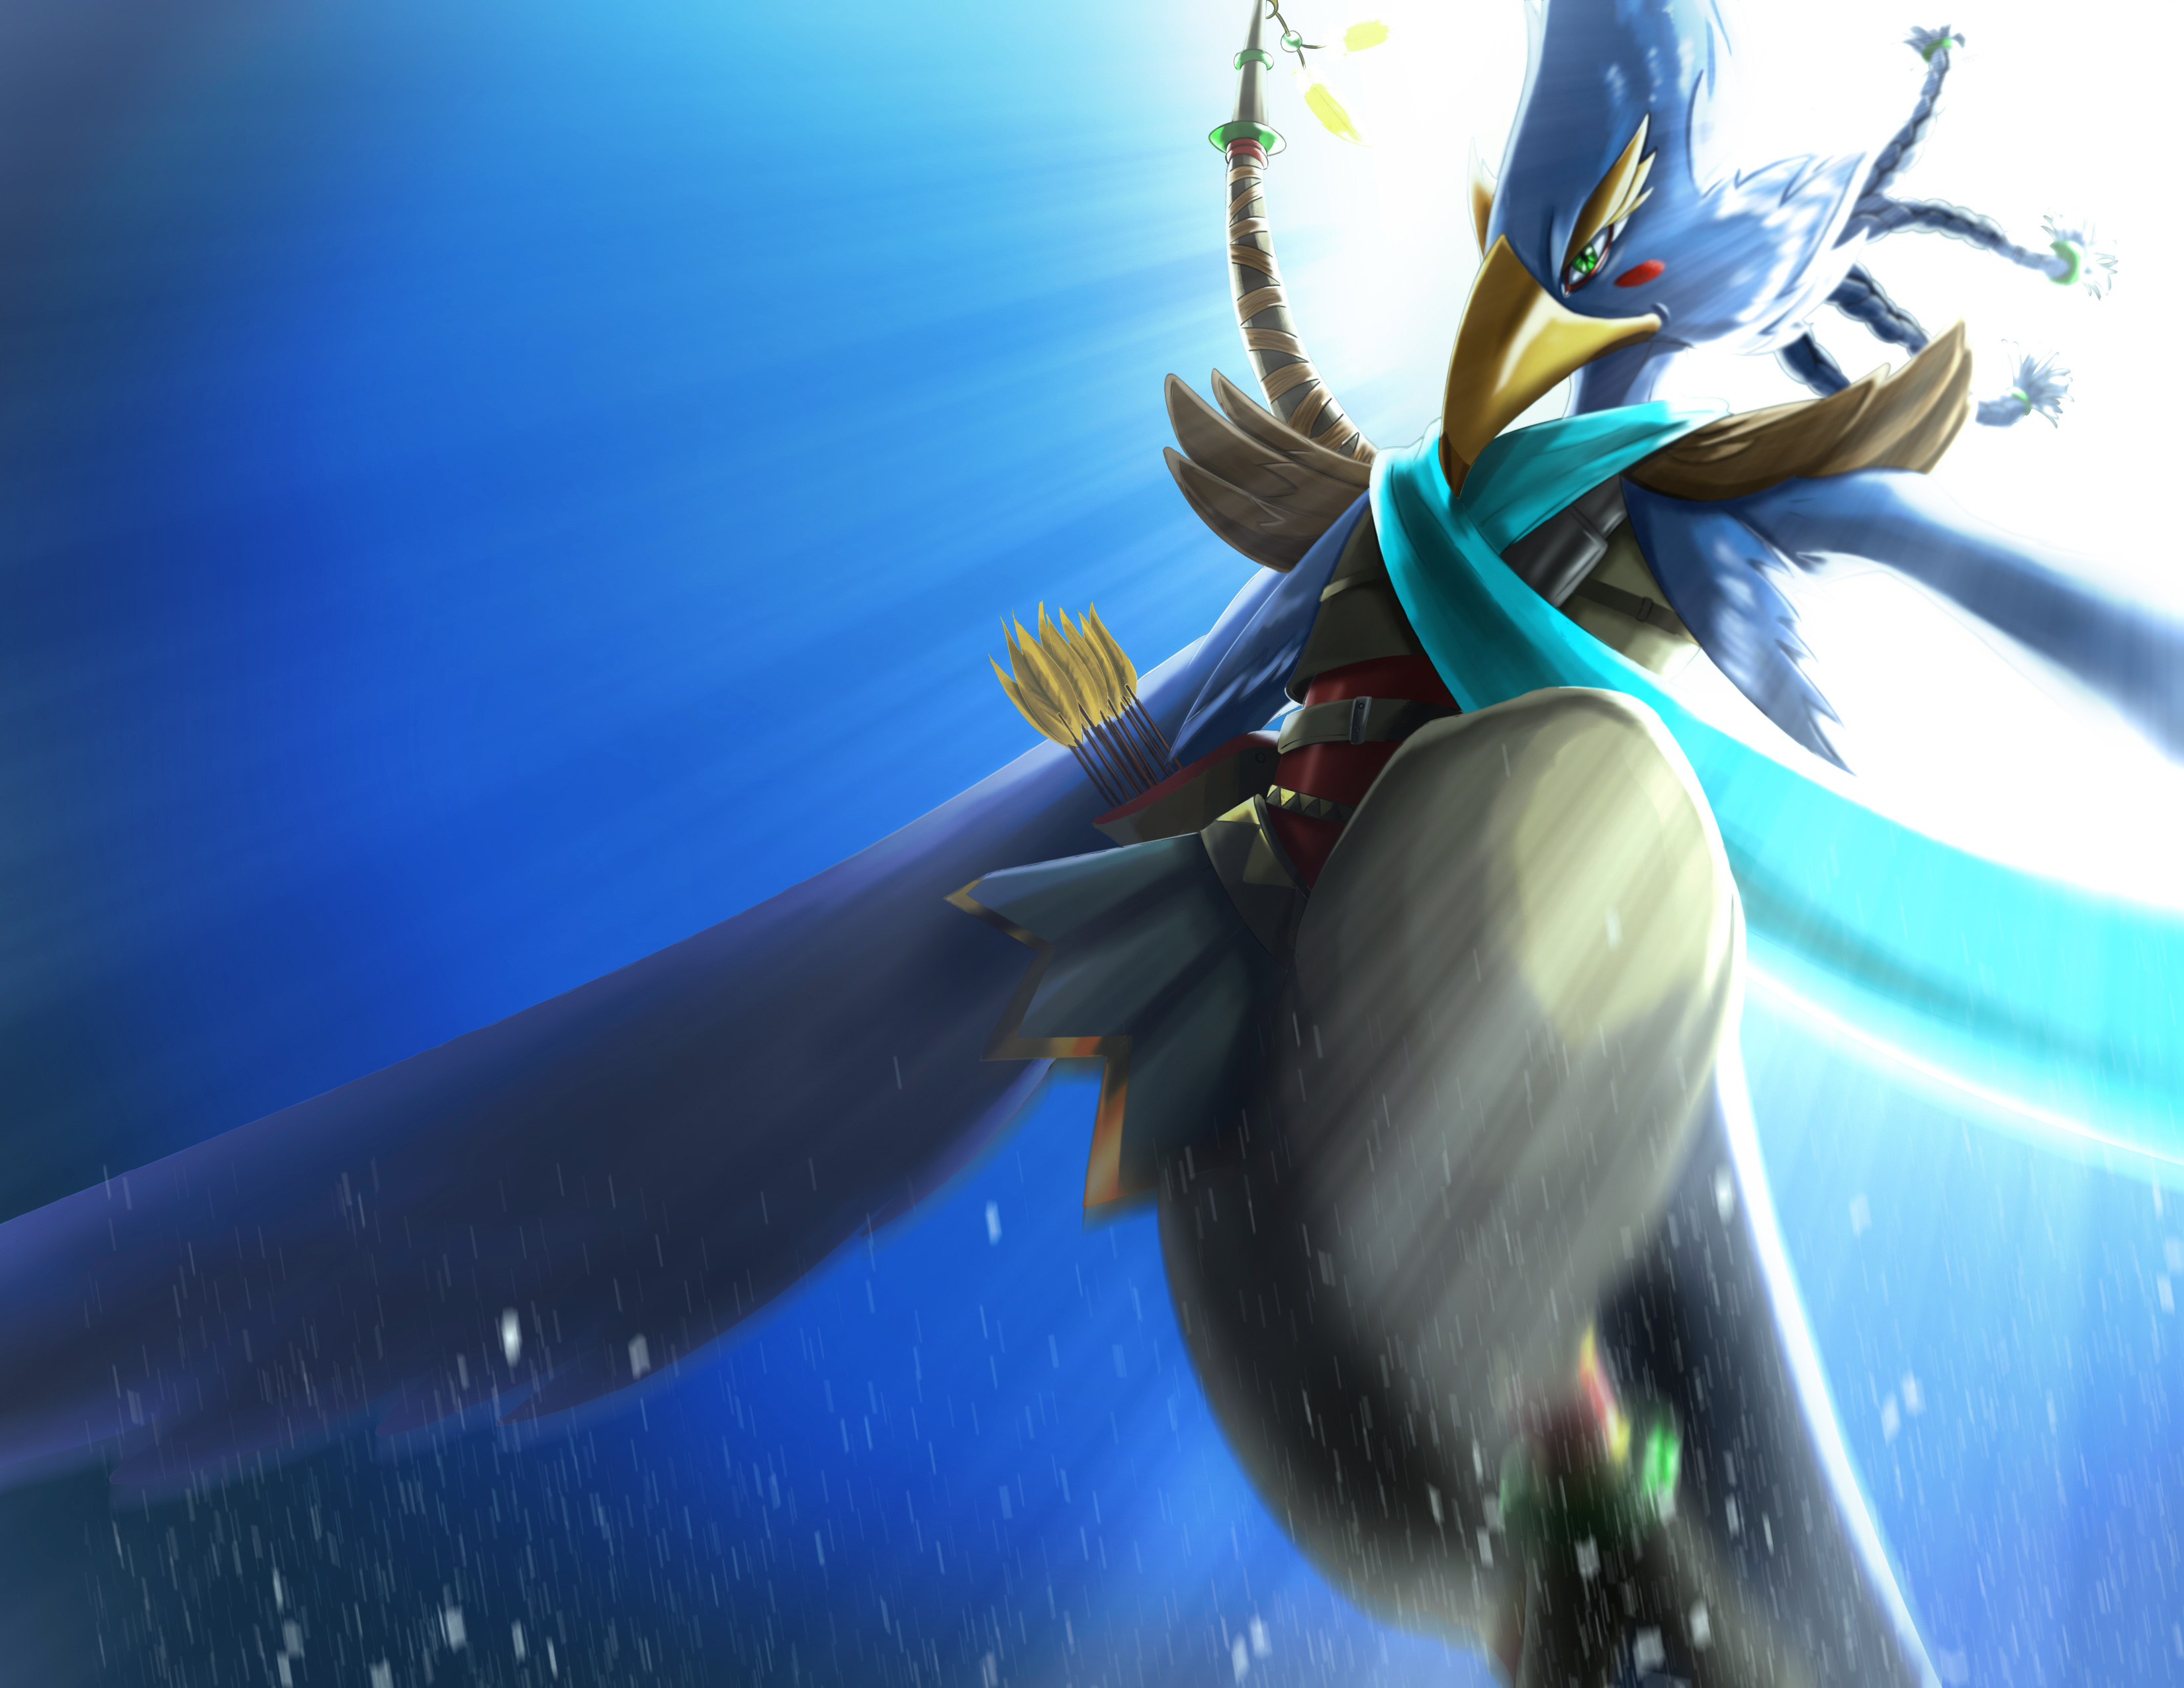 Breath Of The Wild Wallpaper Hd: Revali The Legend Of Zelda Breath Of The Wild, HD Games